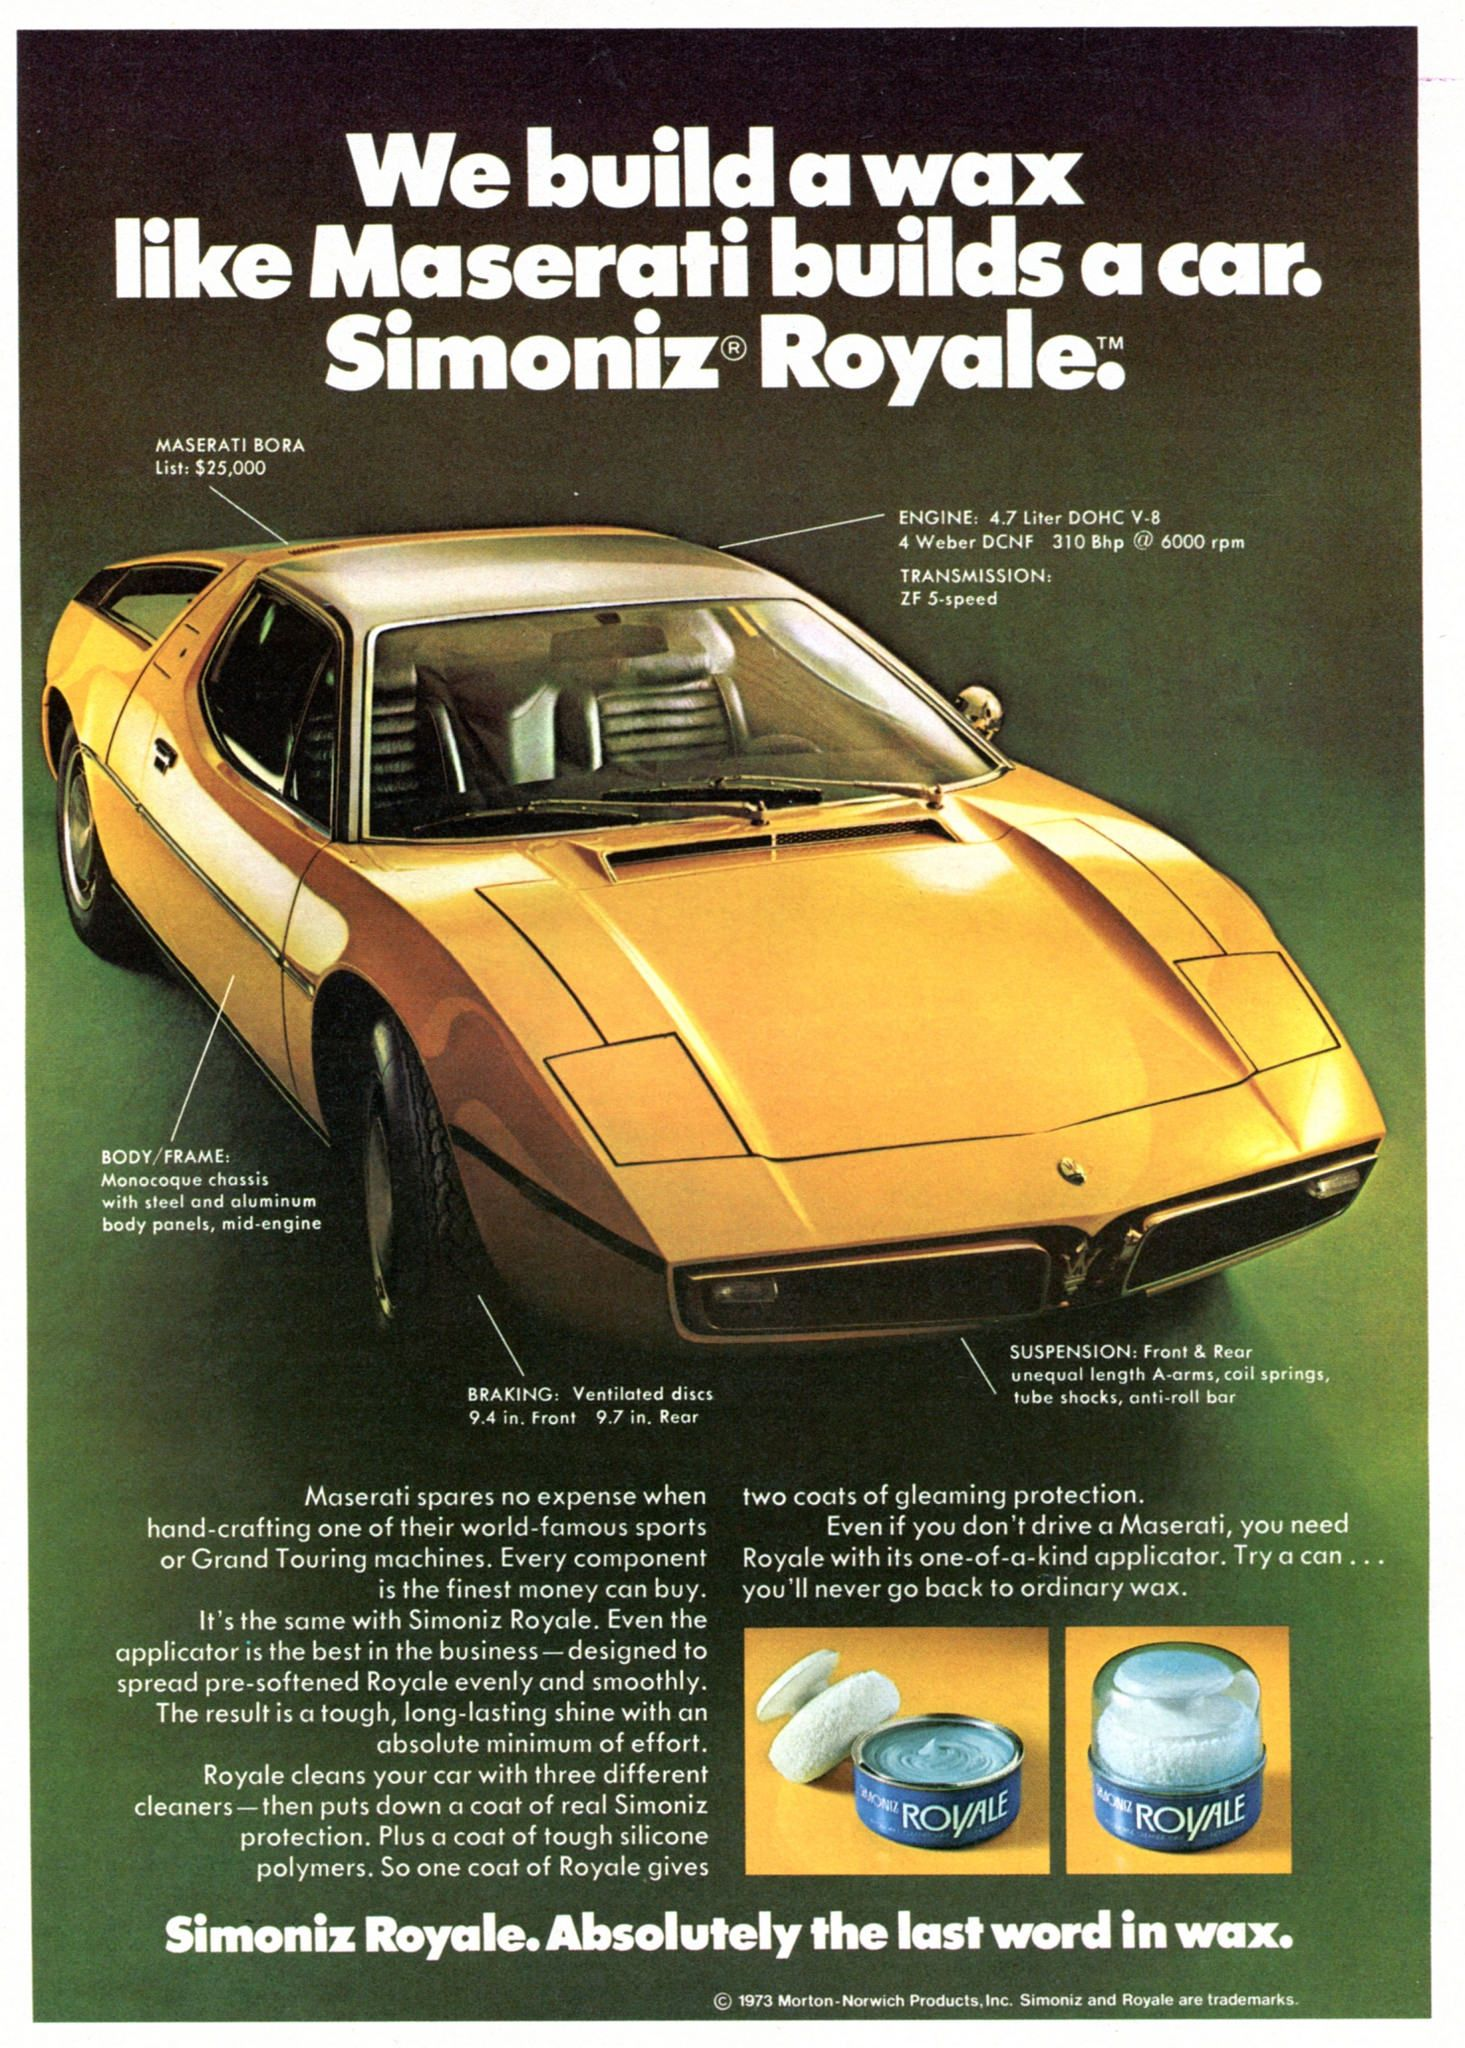 1974 Simoniz Royale Car Wax Advertising Road & Track July 1974